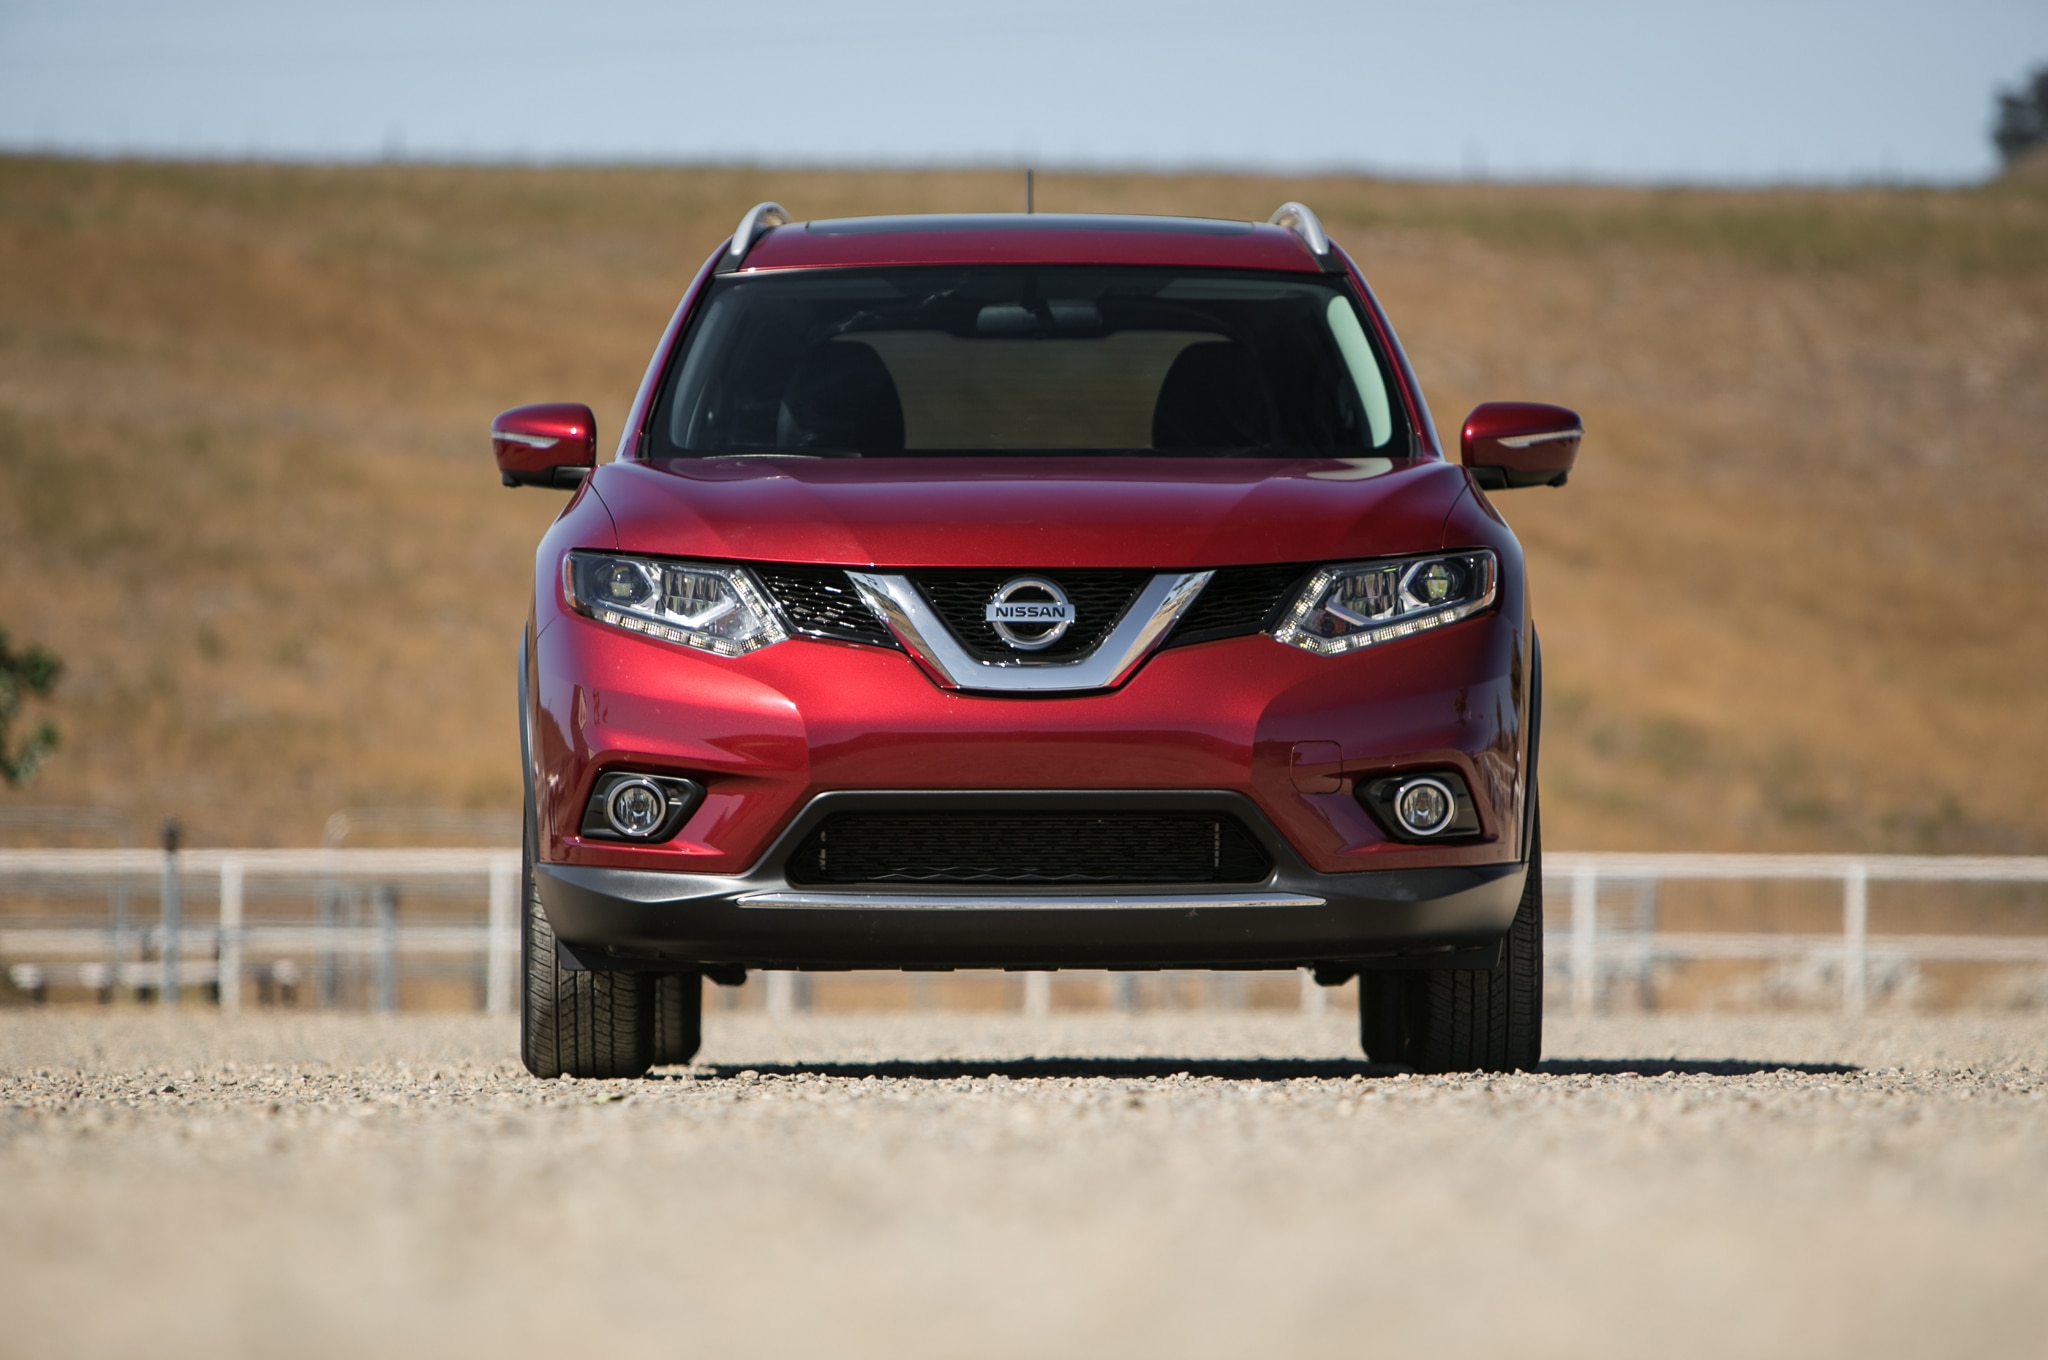 2014 nissan rogue priced from 23 350. Black Bedroom Furniture Sets. Home Design Ideas